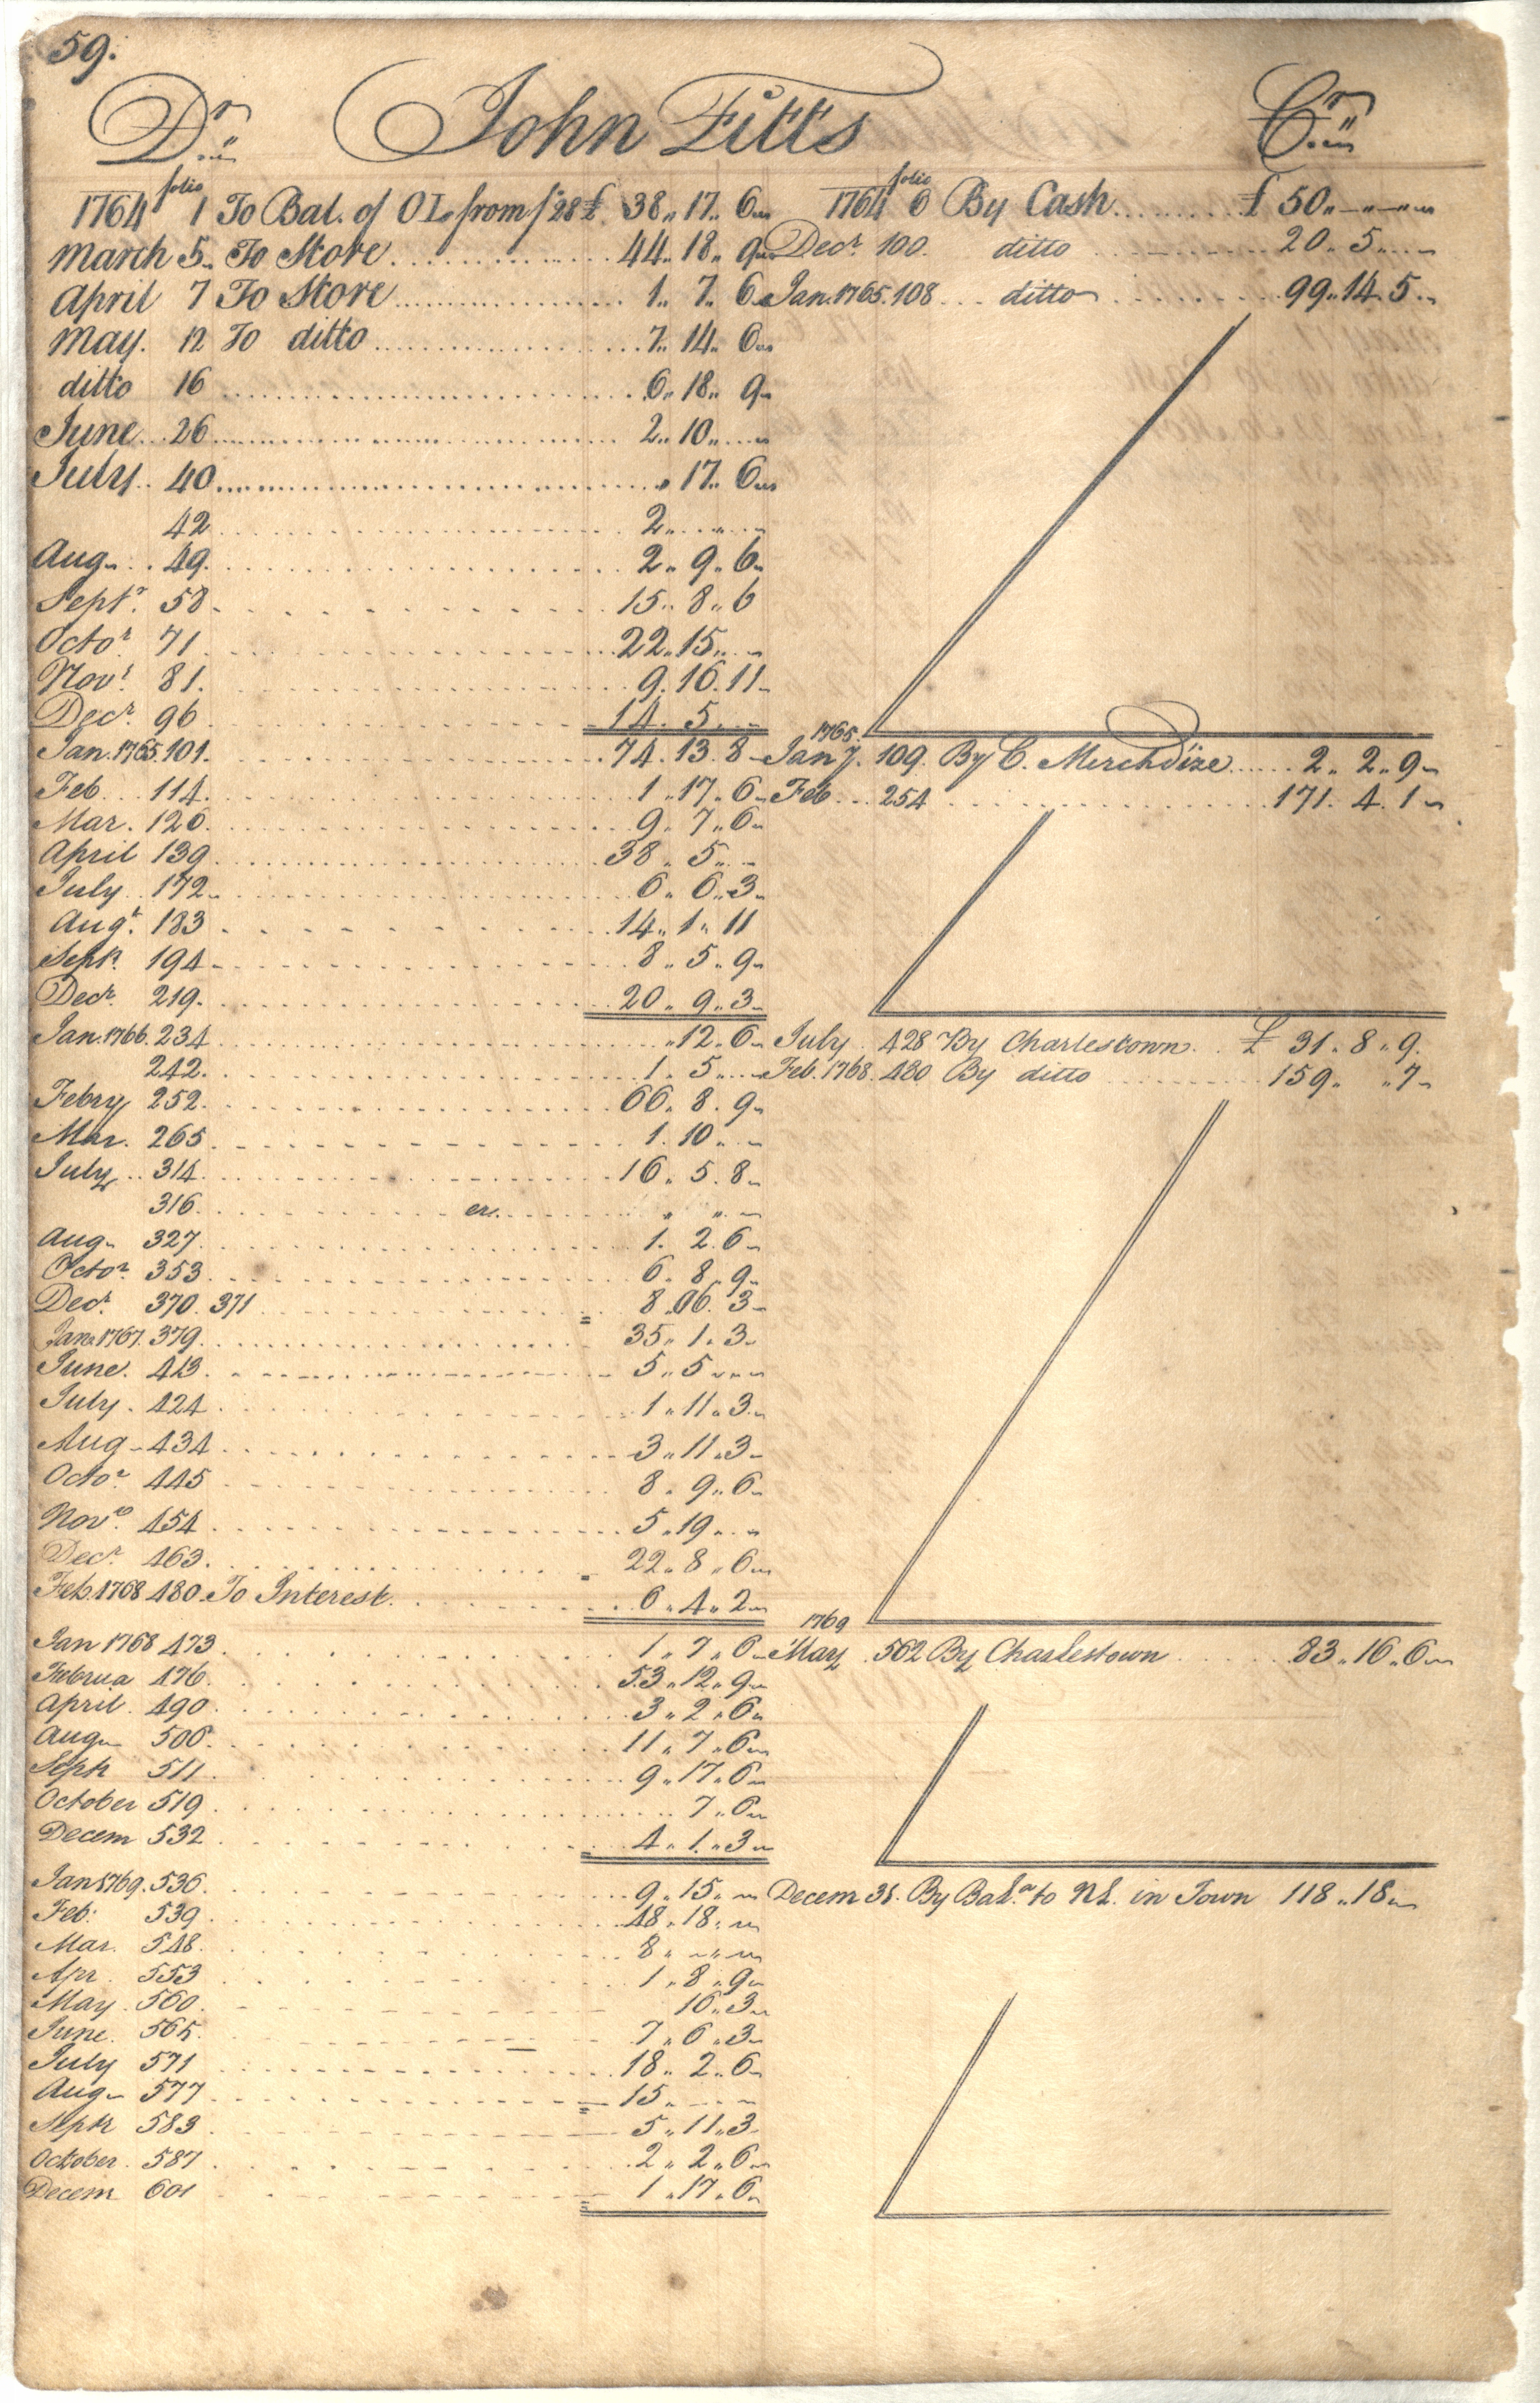 Plowden Weston's Business Ledger, page 59